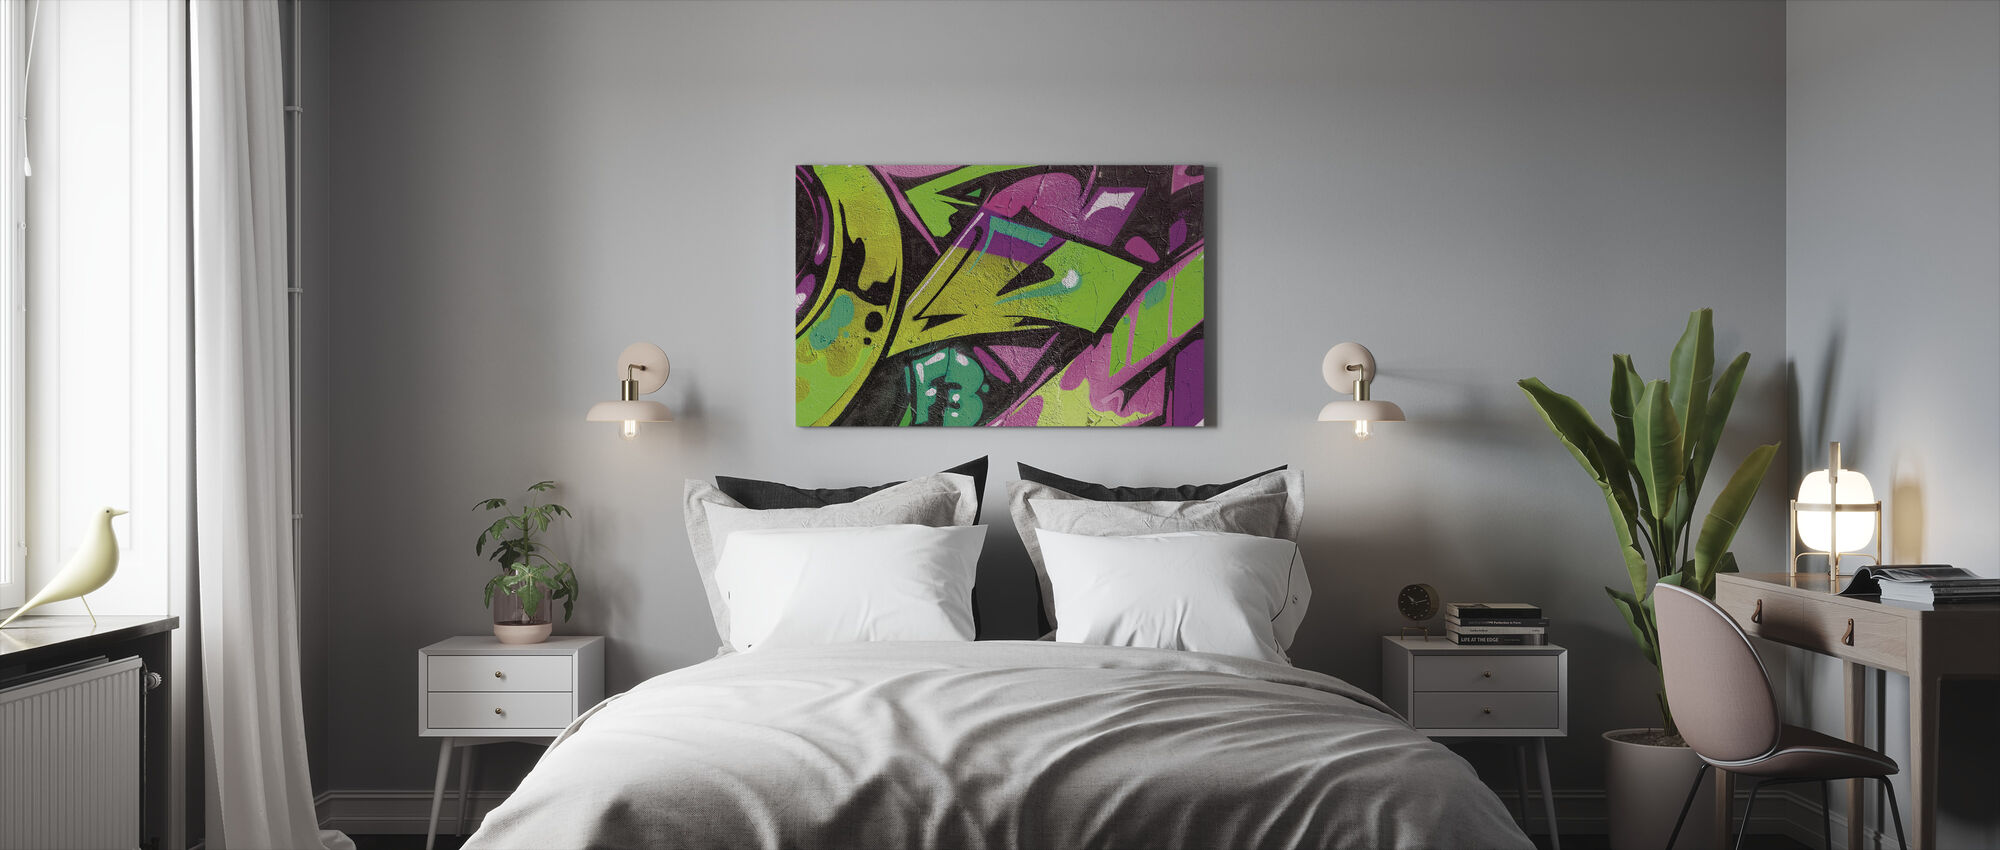 Urban Graffiti Detail - Canvas print - Bedroom